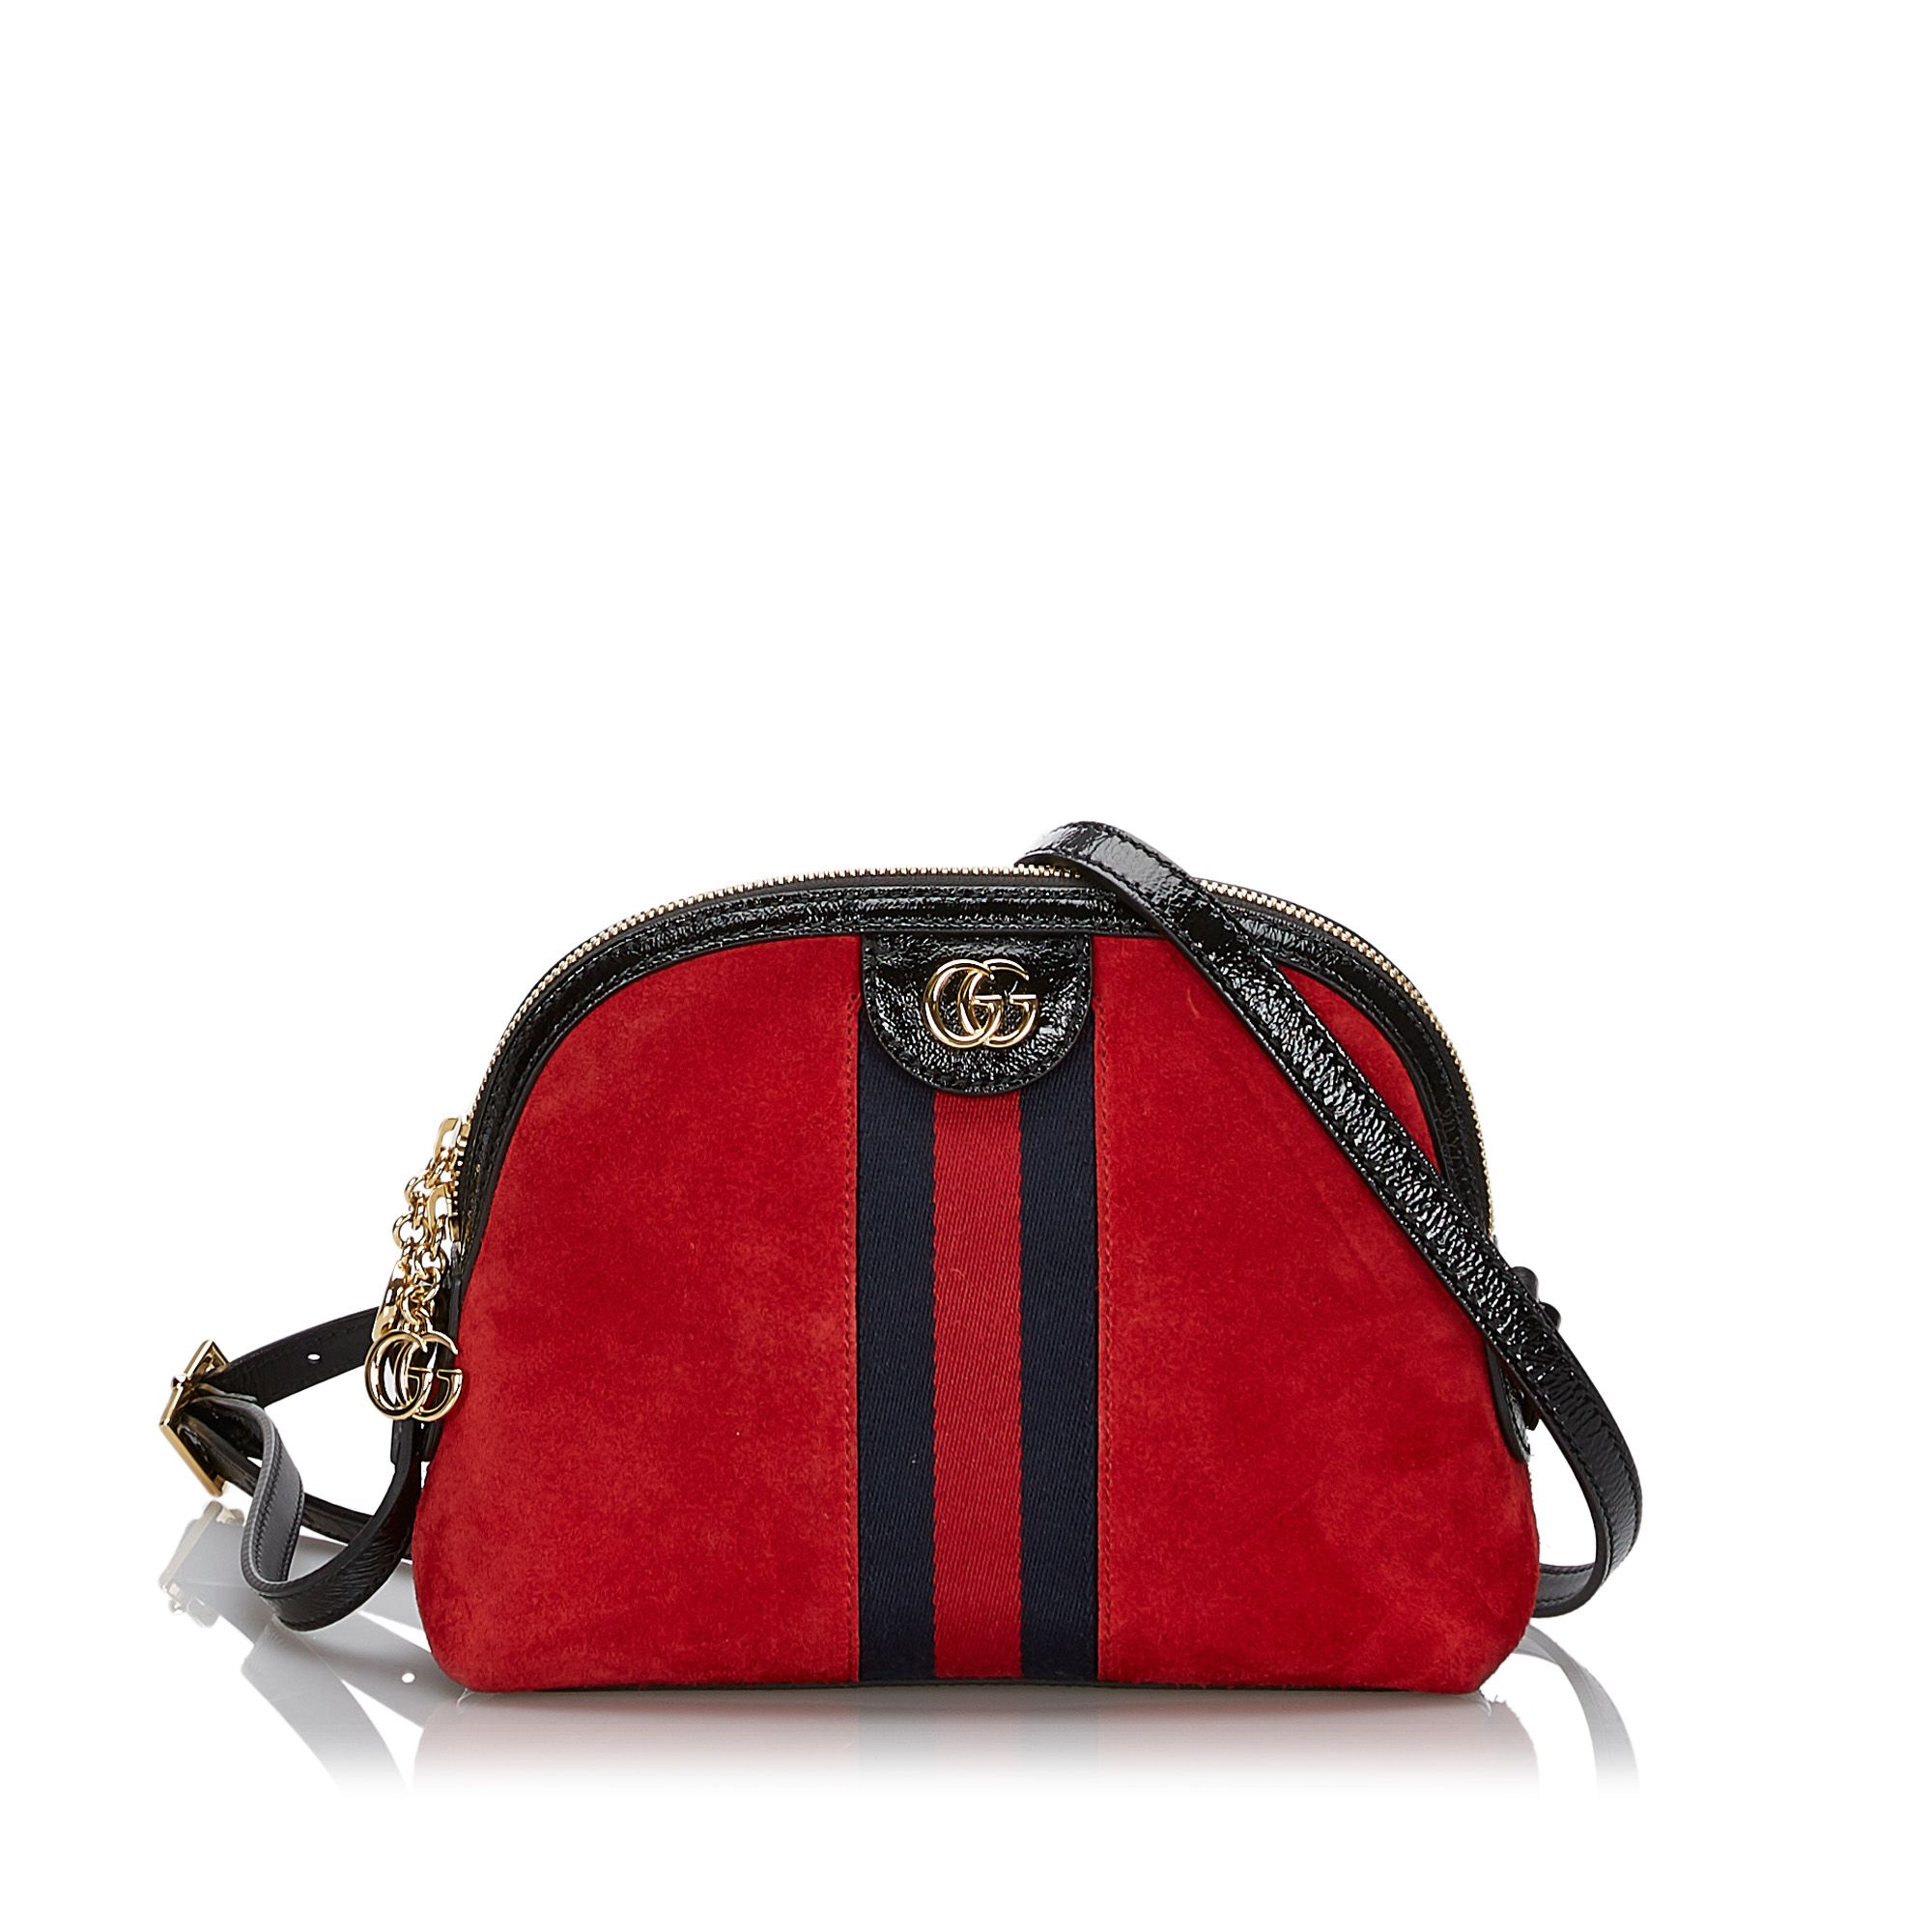 Vintage Gucci Small Suede Ophidia Crossbody Bag Red